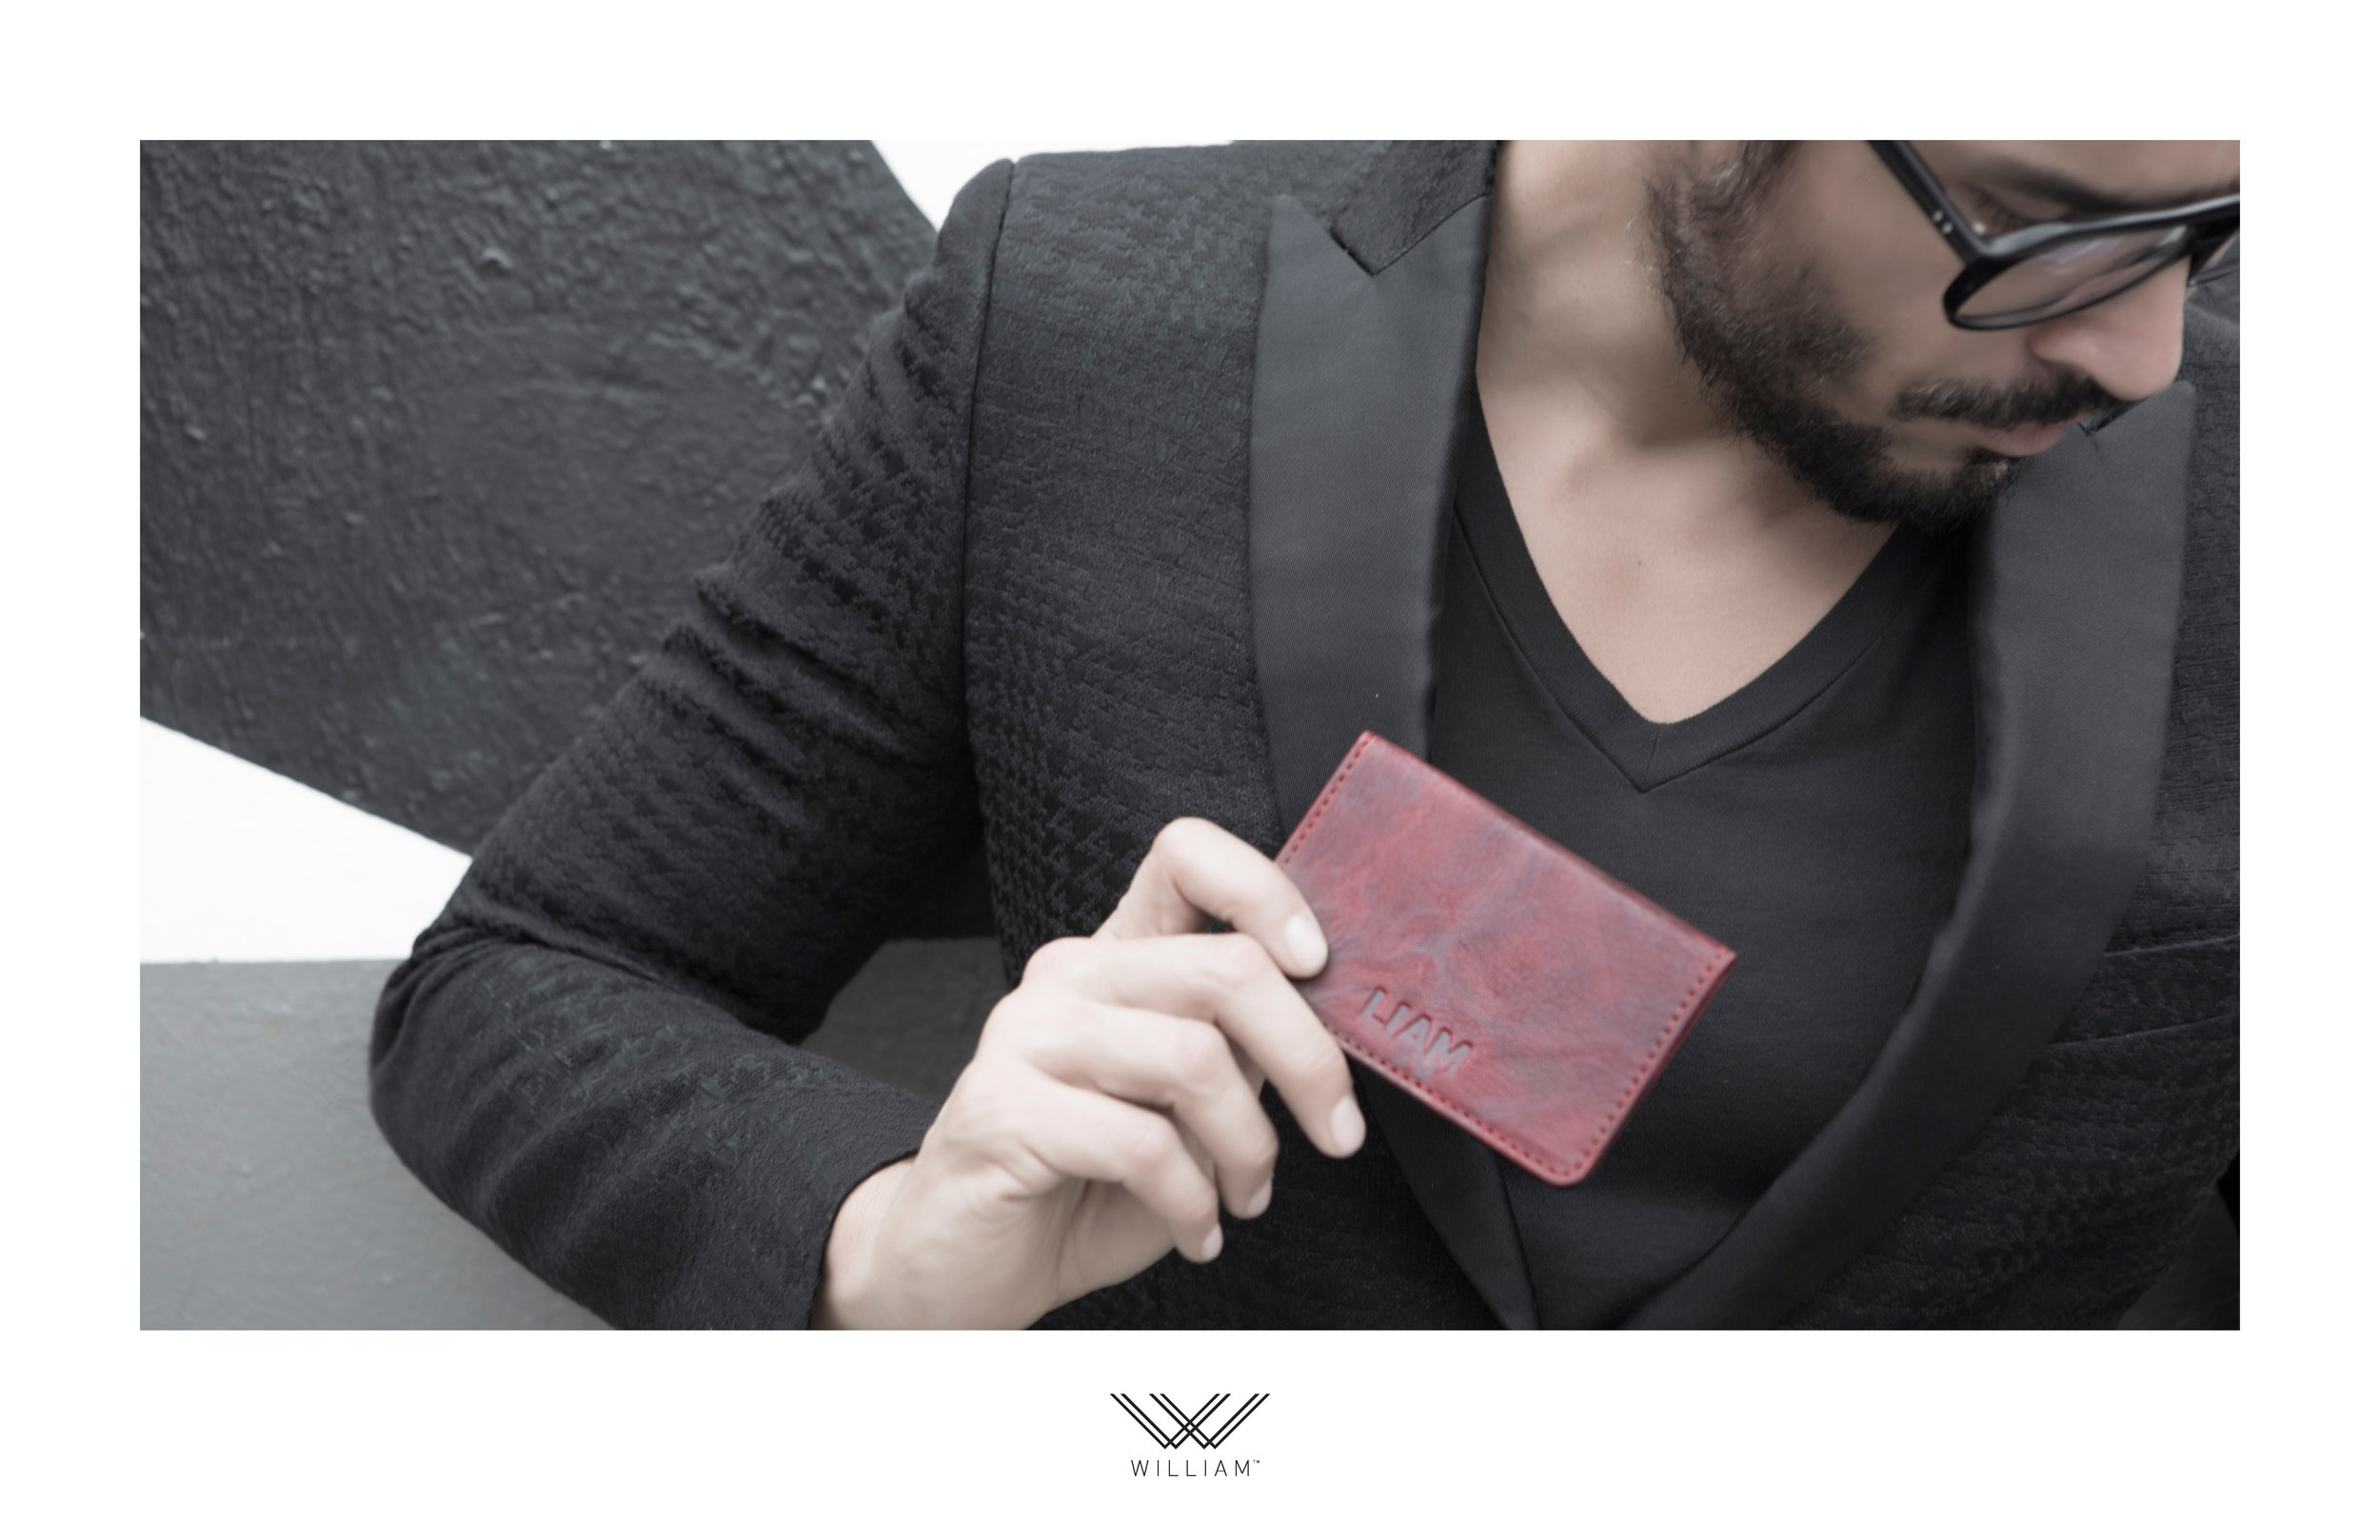 WILLIAM SS 2015 Campaign_Page_10.jpg